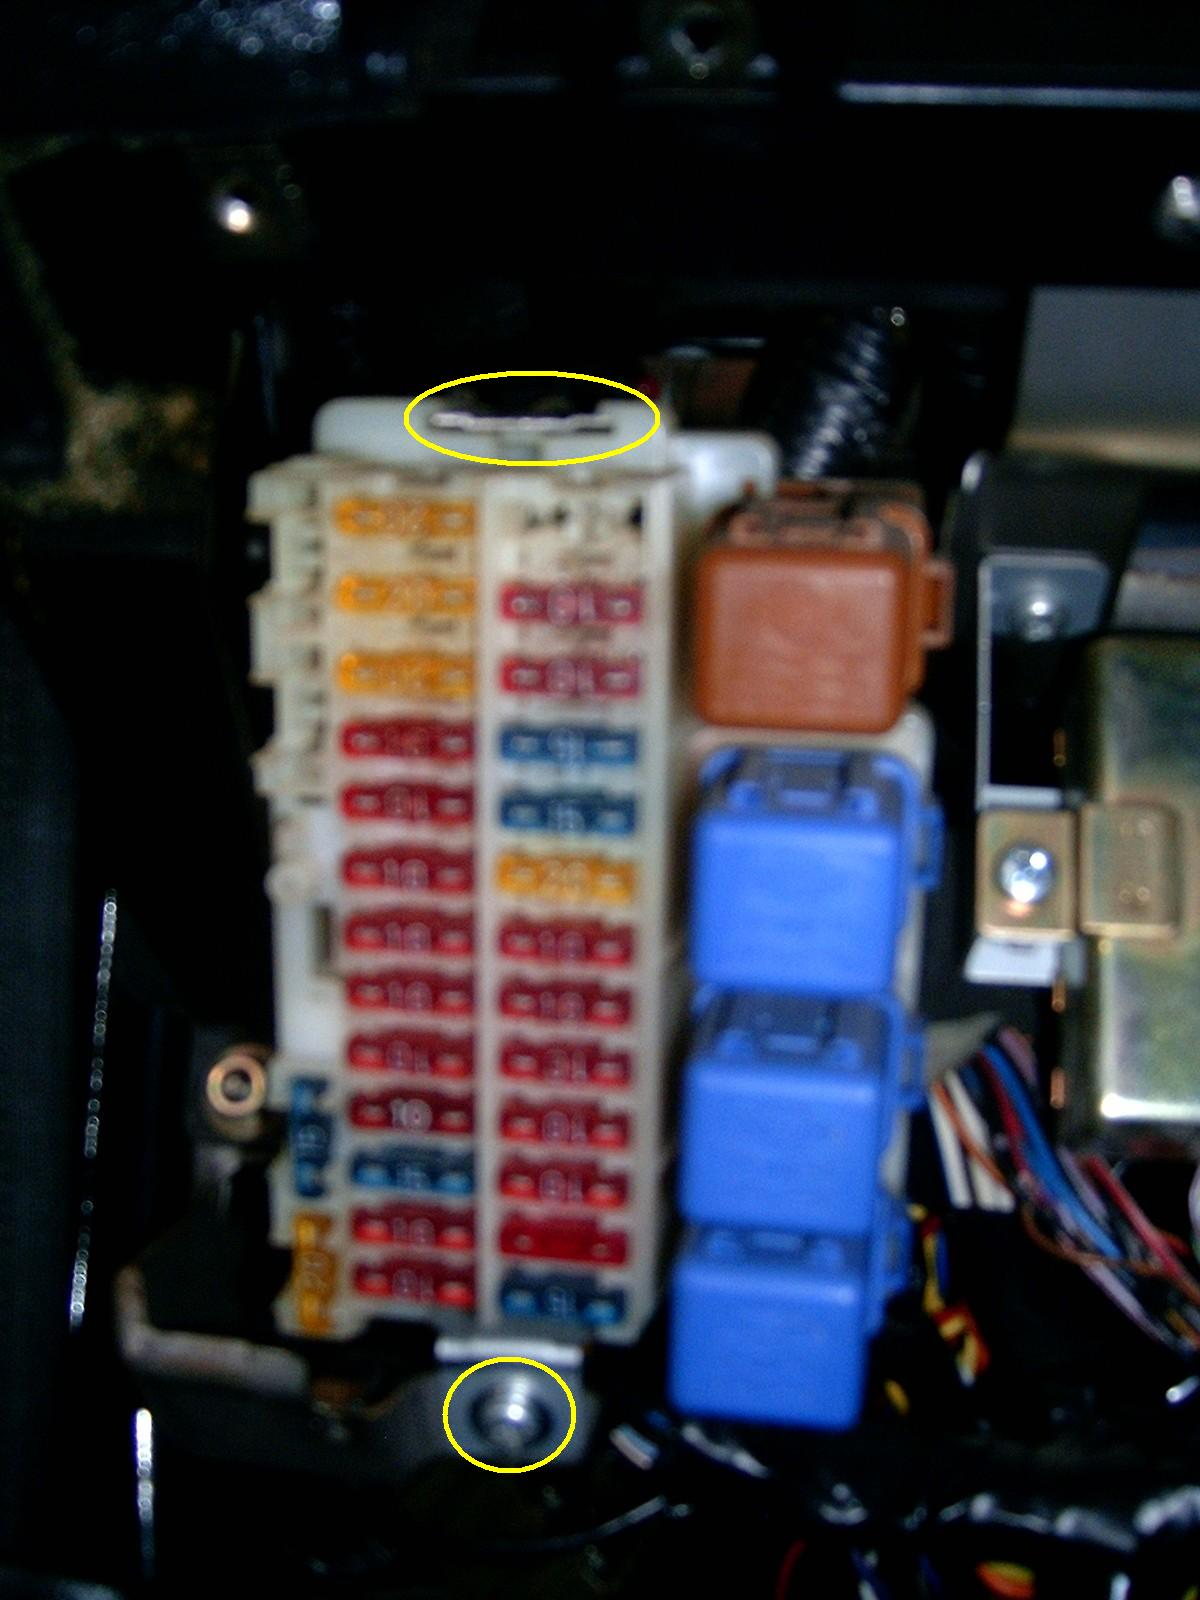 nissan_maxima_dash_removal_18 nissan maxima digital dash hud tutorial 1991 nissan maxima fuse box diagram at soozxer.org